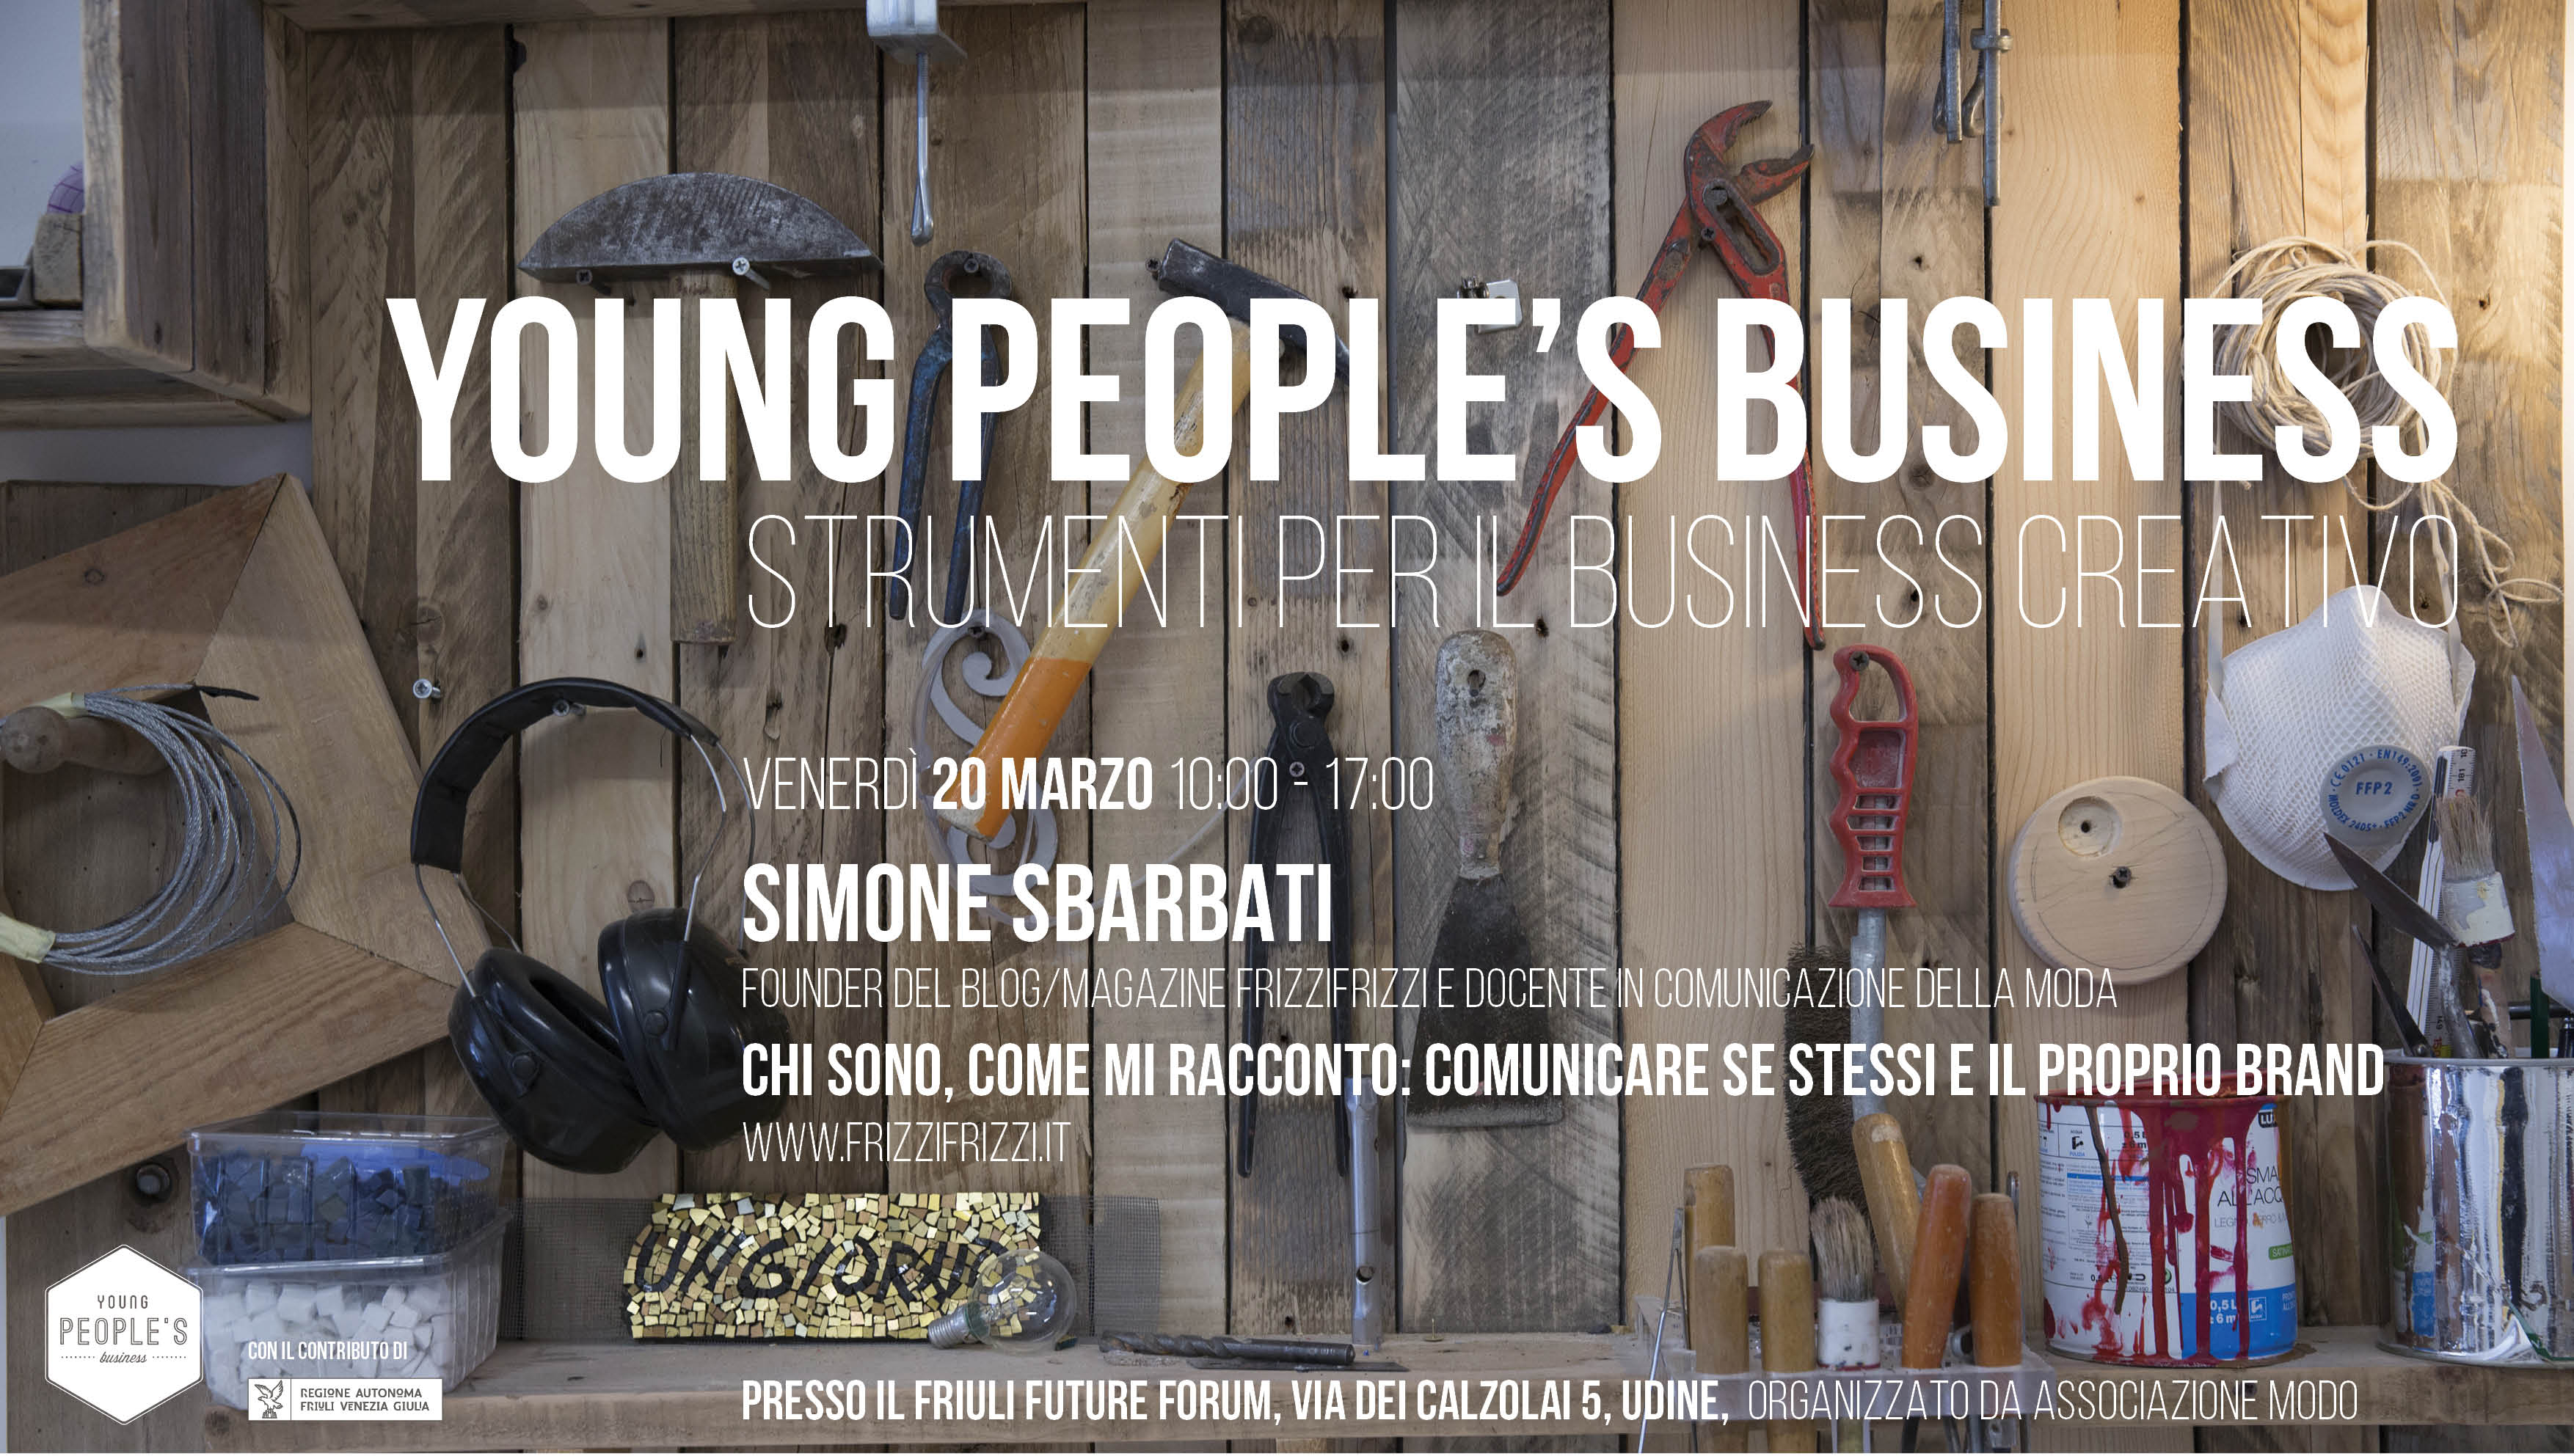 Young people's business 2015 con Simone Sbarbati e Enrica Civello